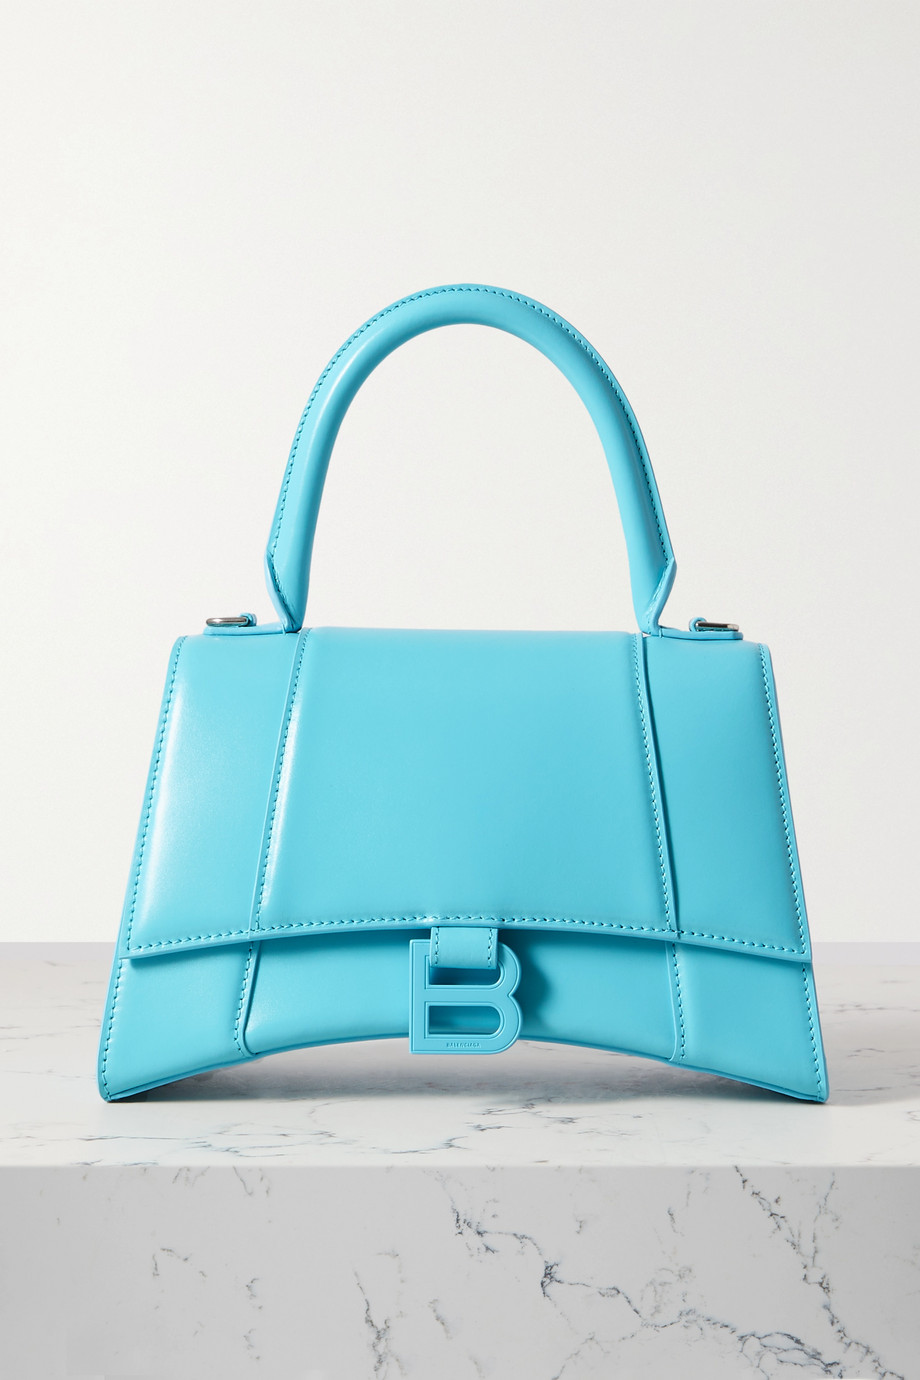 Balenciaga Hourglass small leather tote